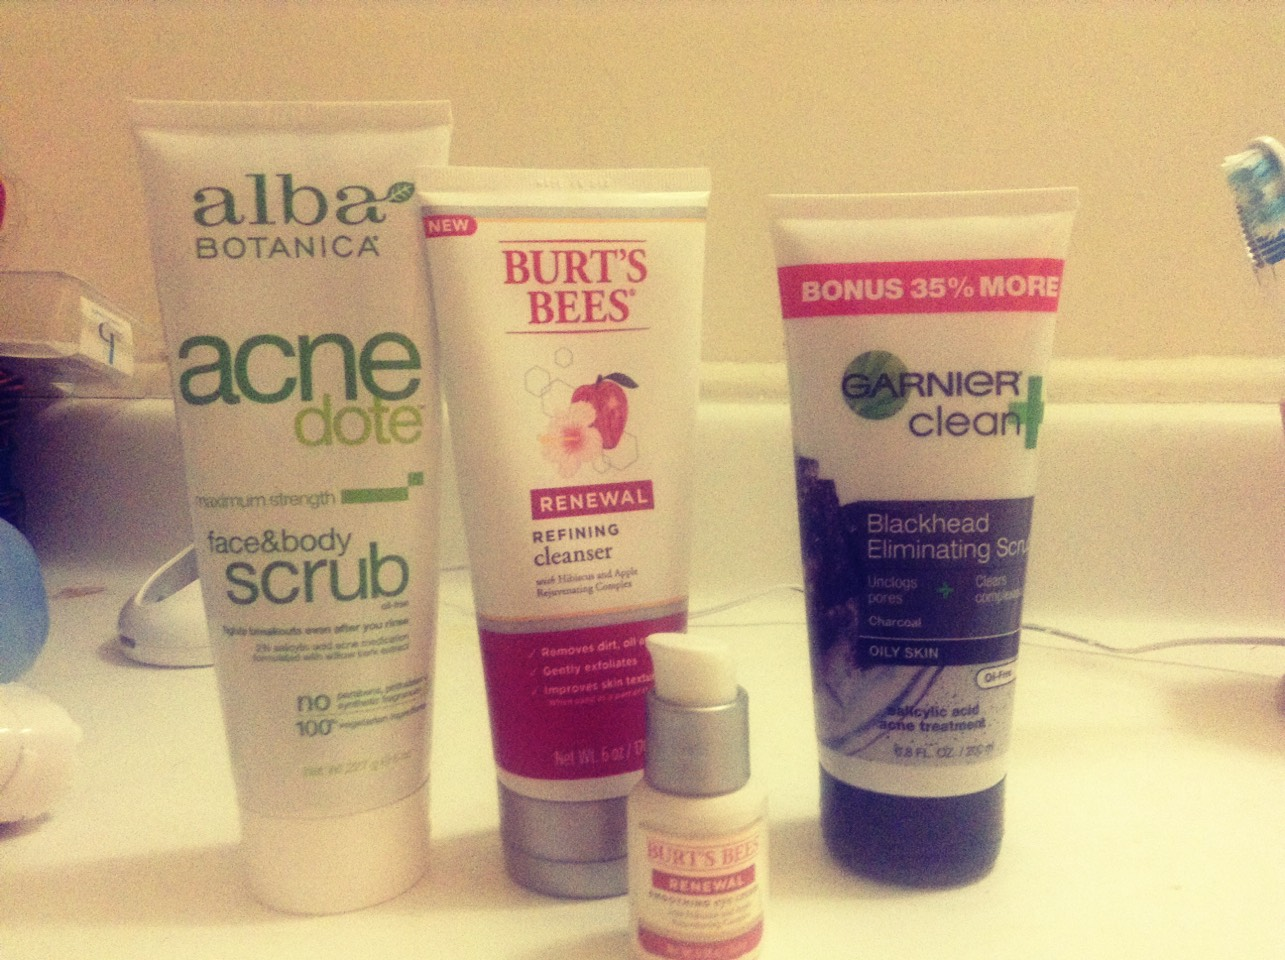 If u use alba acne dote,Burt's bees renewal refining cleanser,garnier clean blackhead remover and Burt's bees renewal smoothing eye cream your face becomes smoother,less oily, and has less acne and has no blackheads